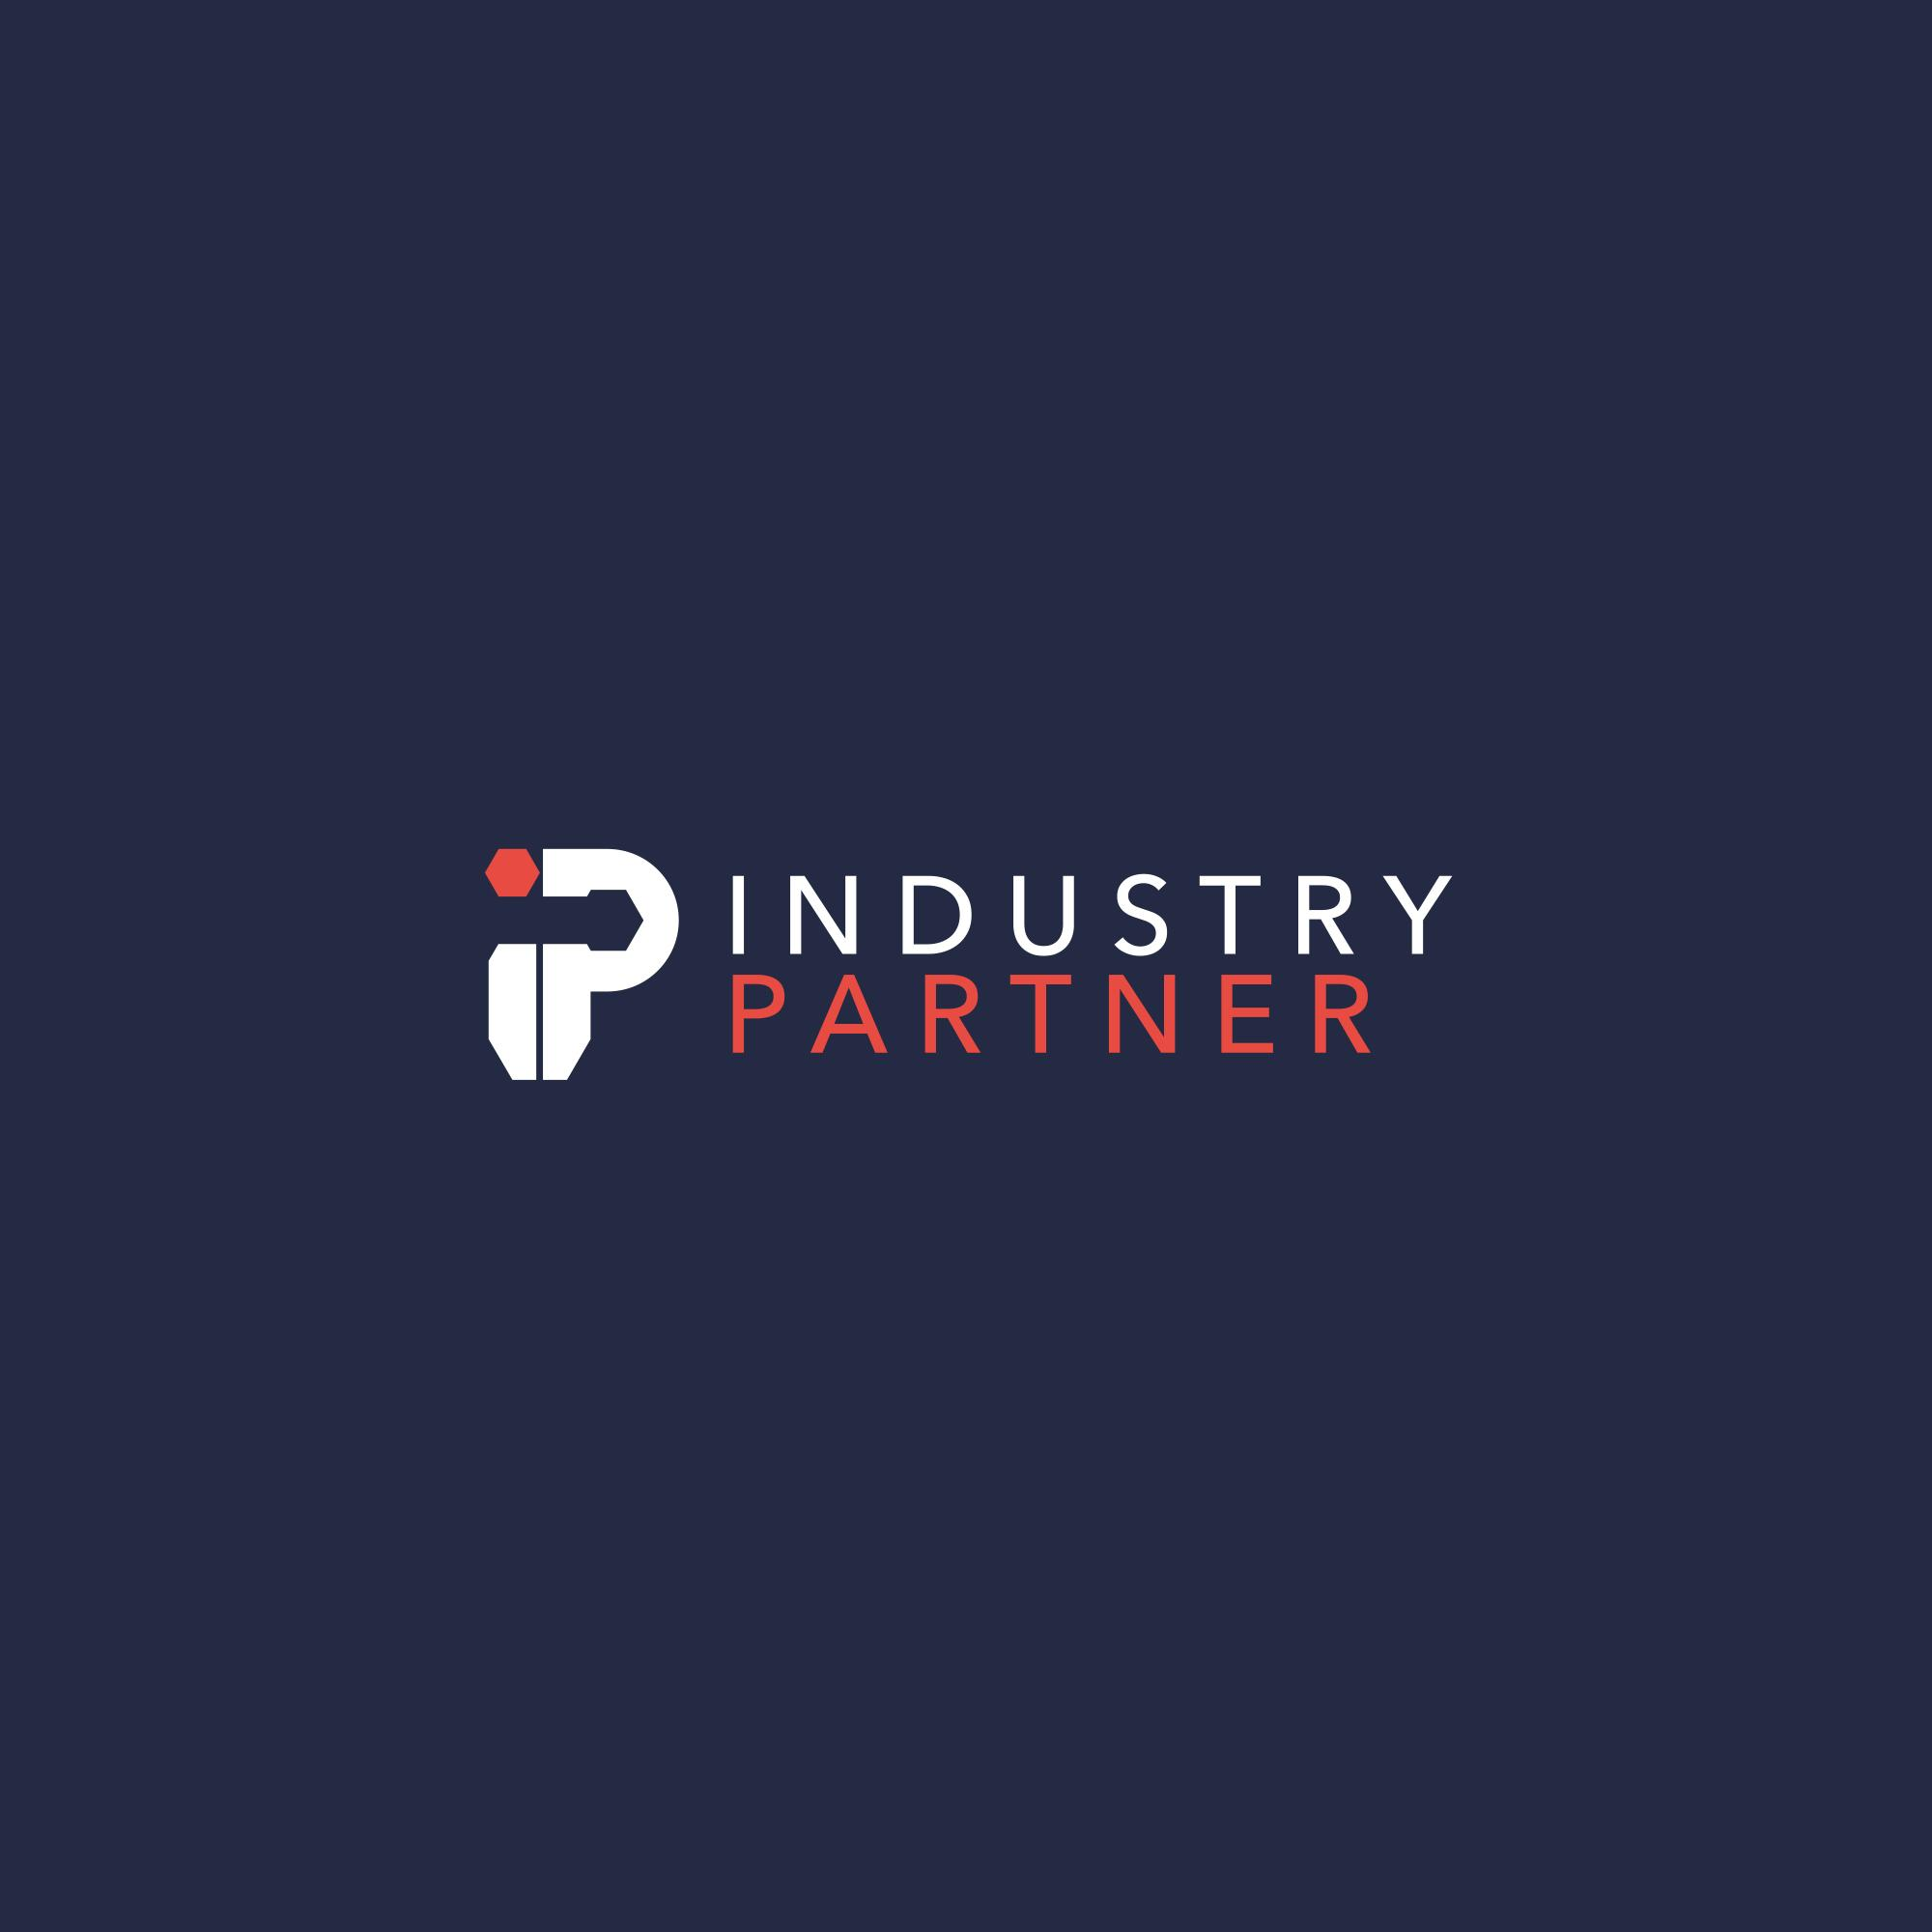 INDUSTRY PARTNER LIMITED